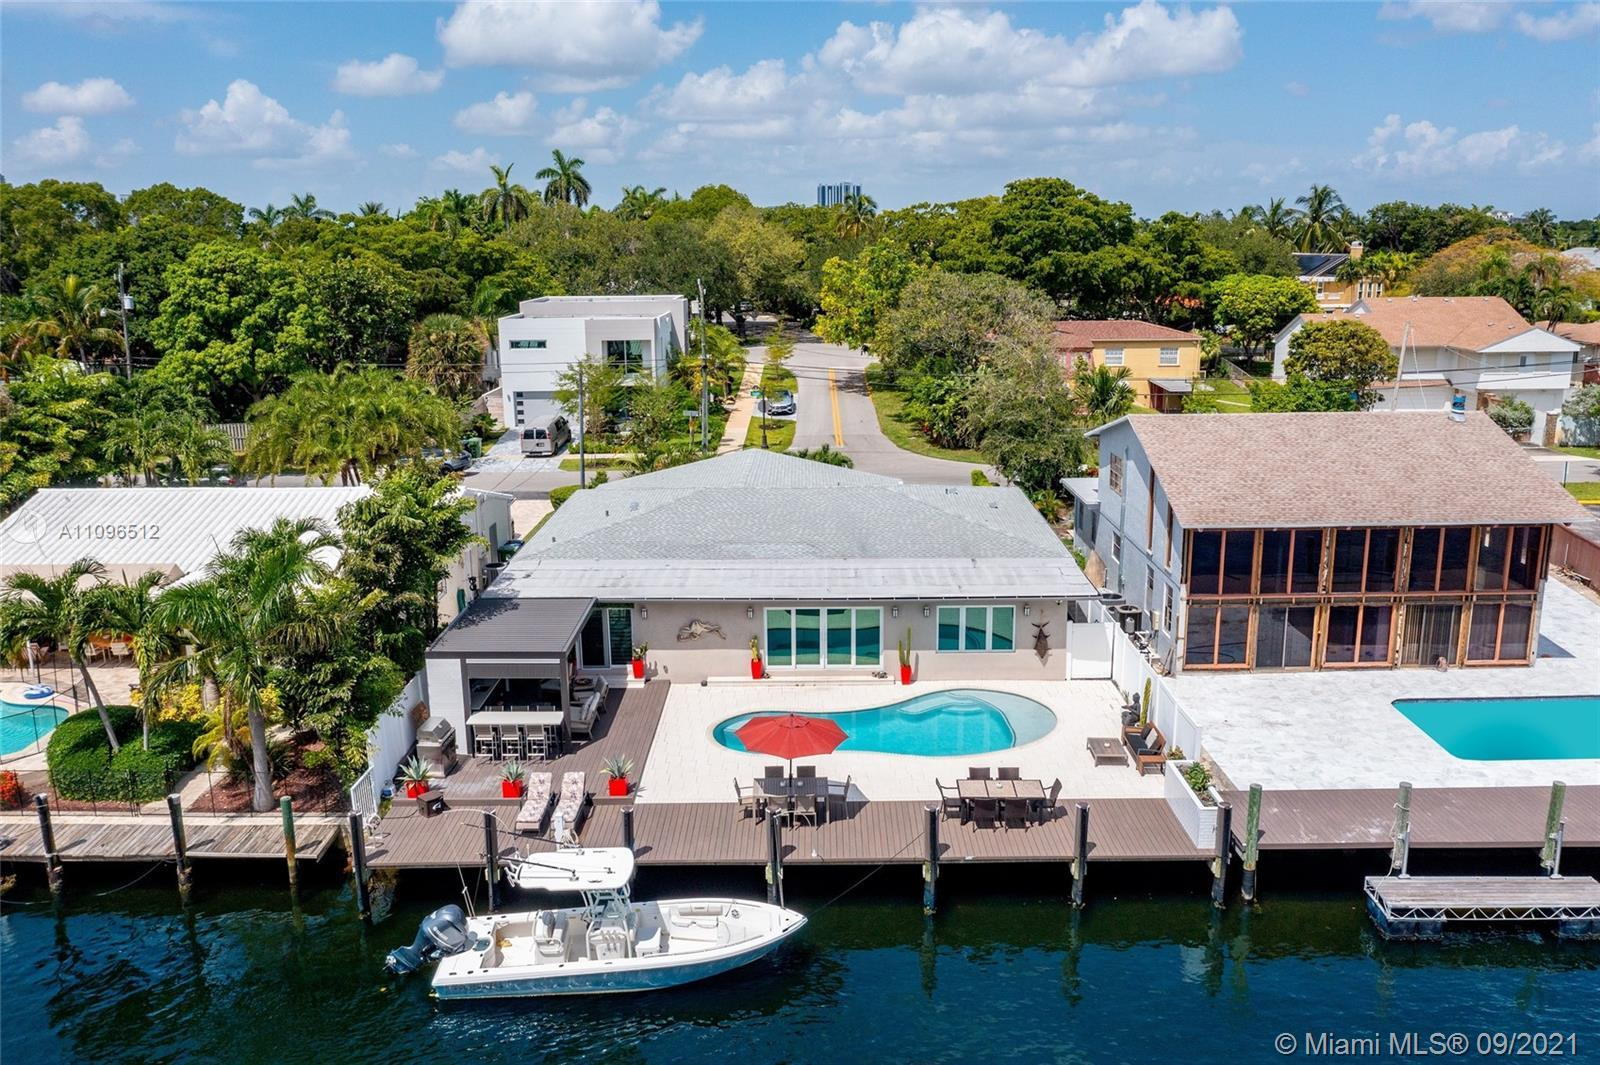 Incredible waterfront property perfectly designed with entertaining in mind. This 3 bedroom, 3 bath